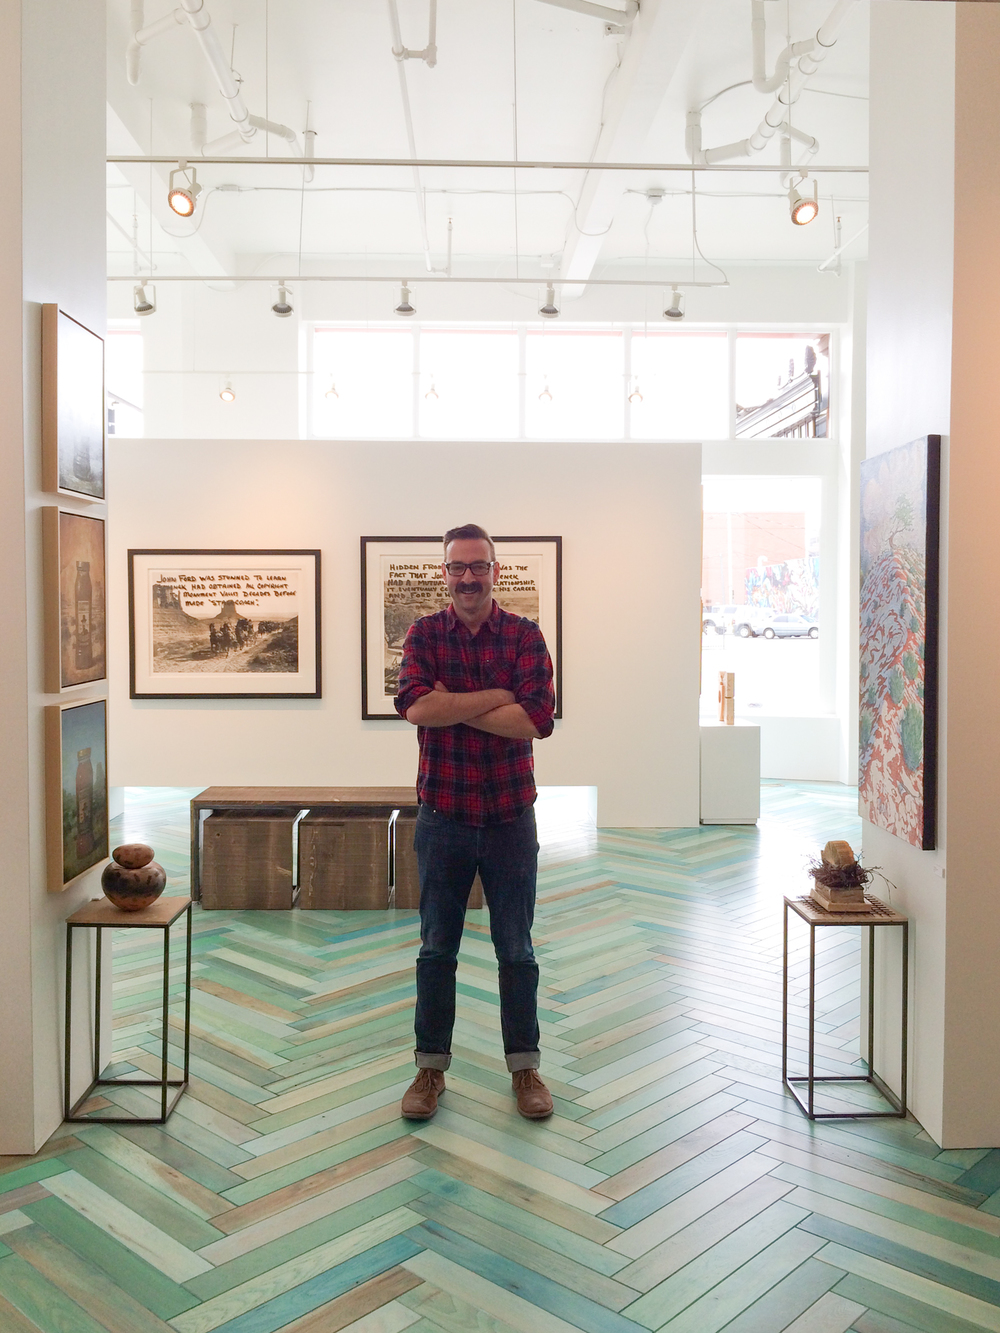 Yours Truly standing in the main gallery space.